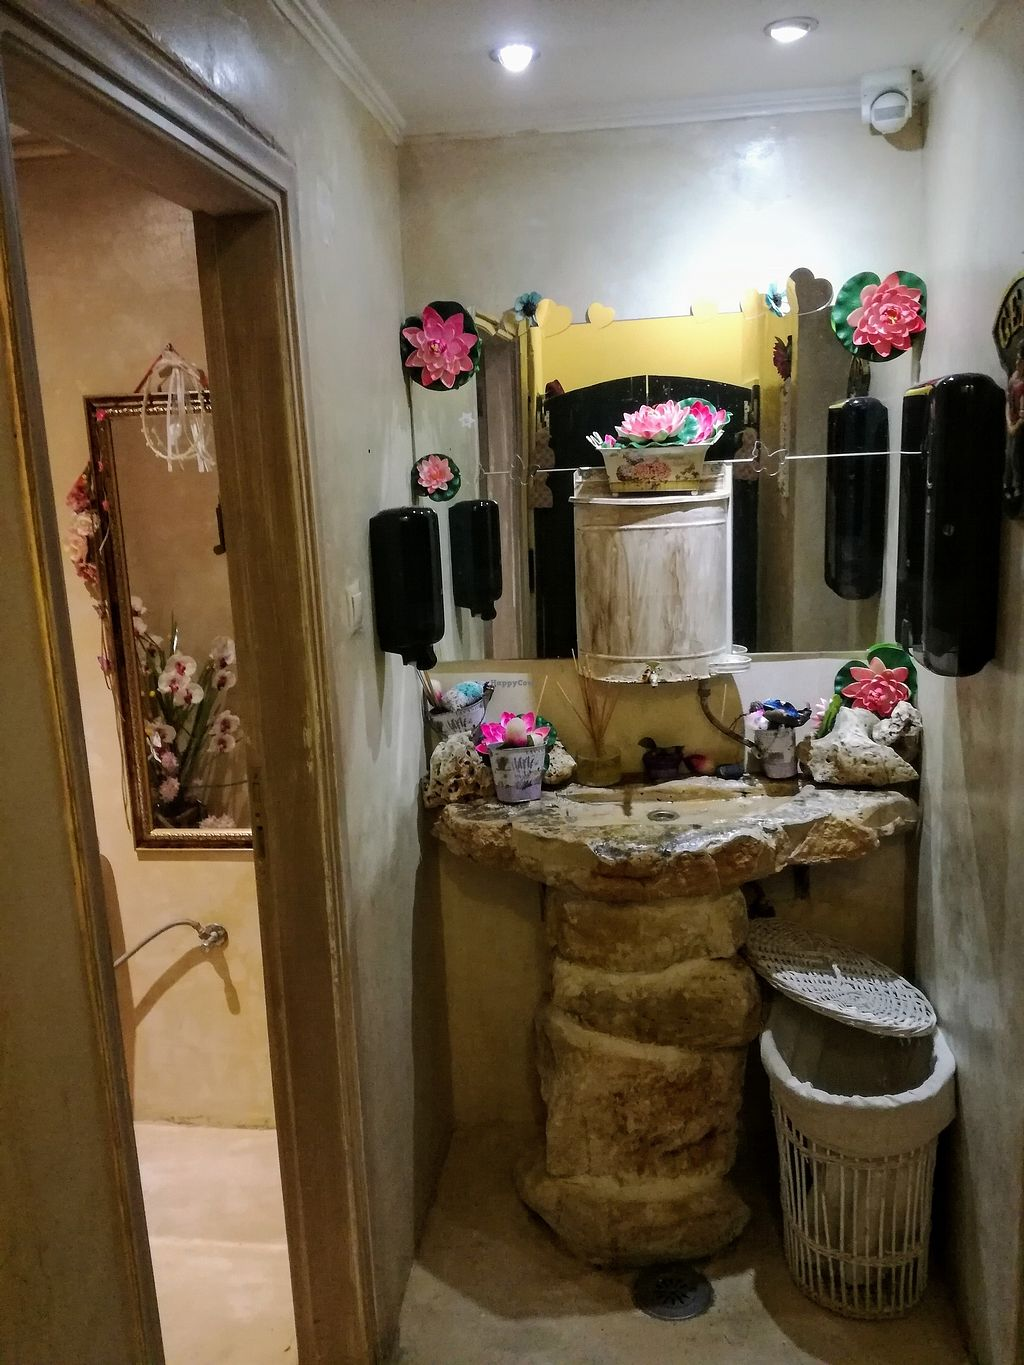 """Photo of Yard of Taste  by <a href=""""/members/profile/Ana-MariaMaican"""">Ana-MariaMaican</a> <br/>Bathroom <br/> June 29, 2017  - <a href='/contact/abuse/image/73484/274751'>Report</a>"""